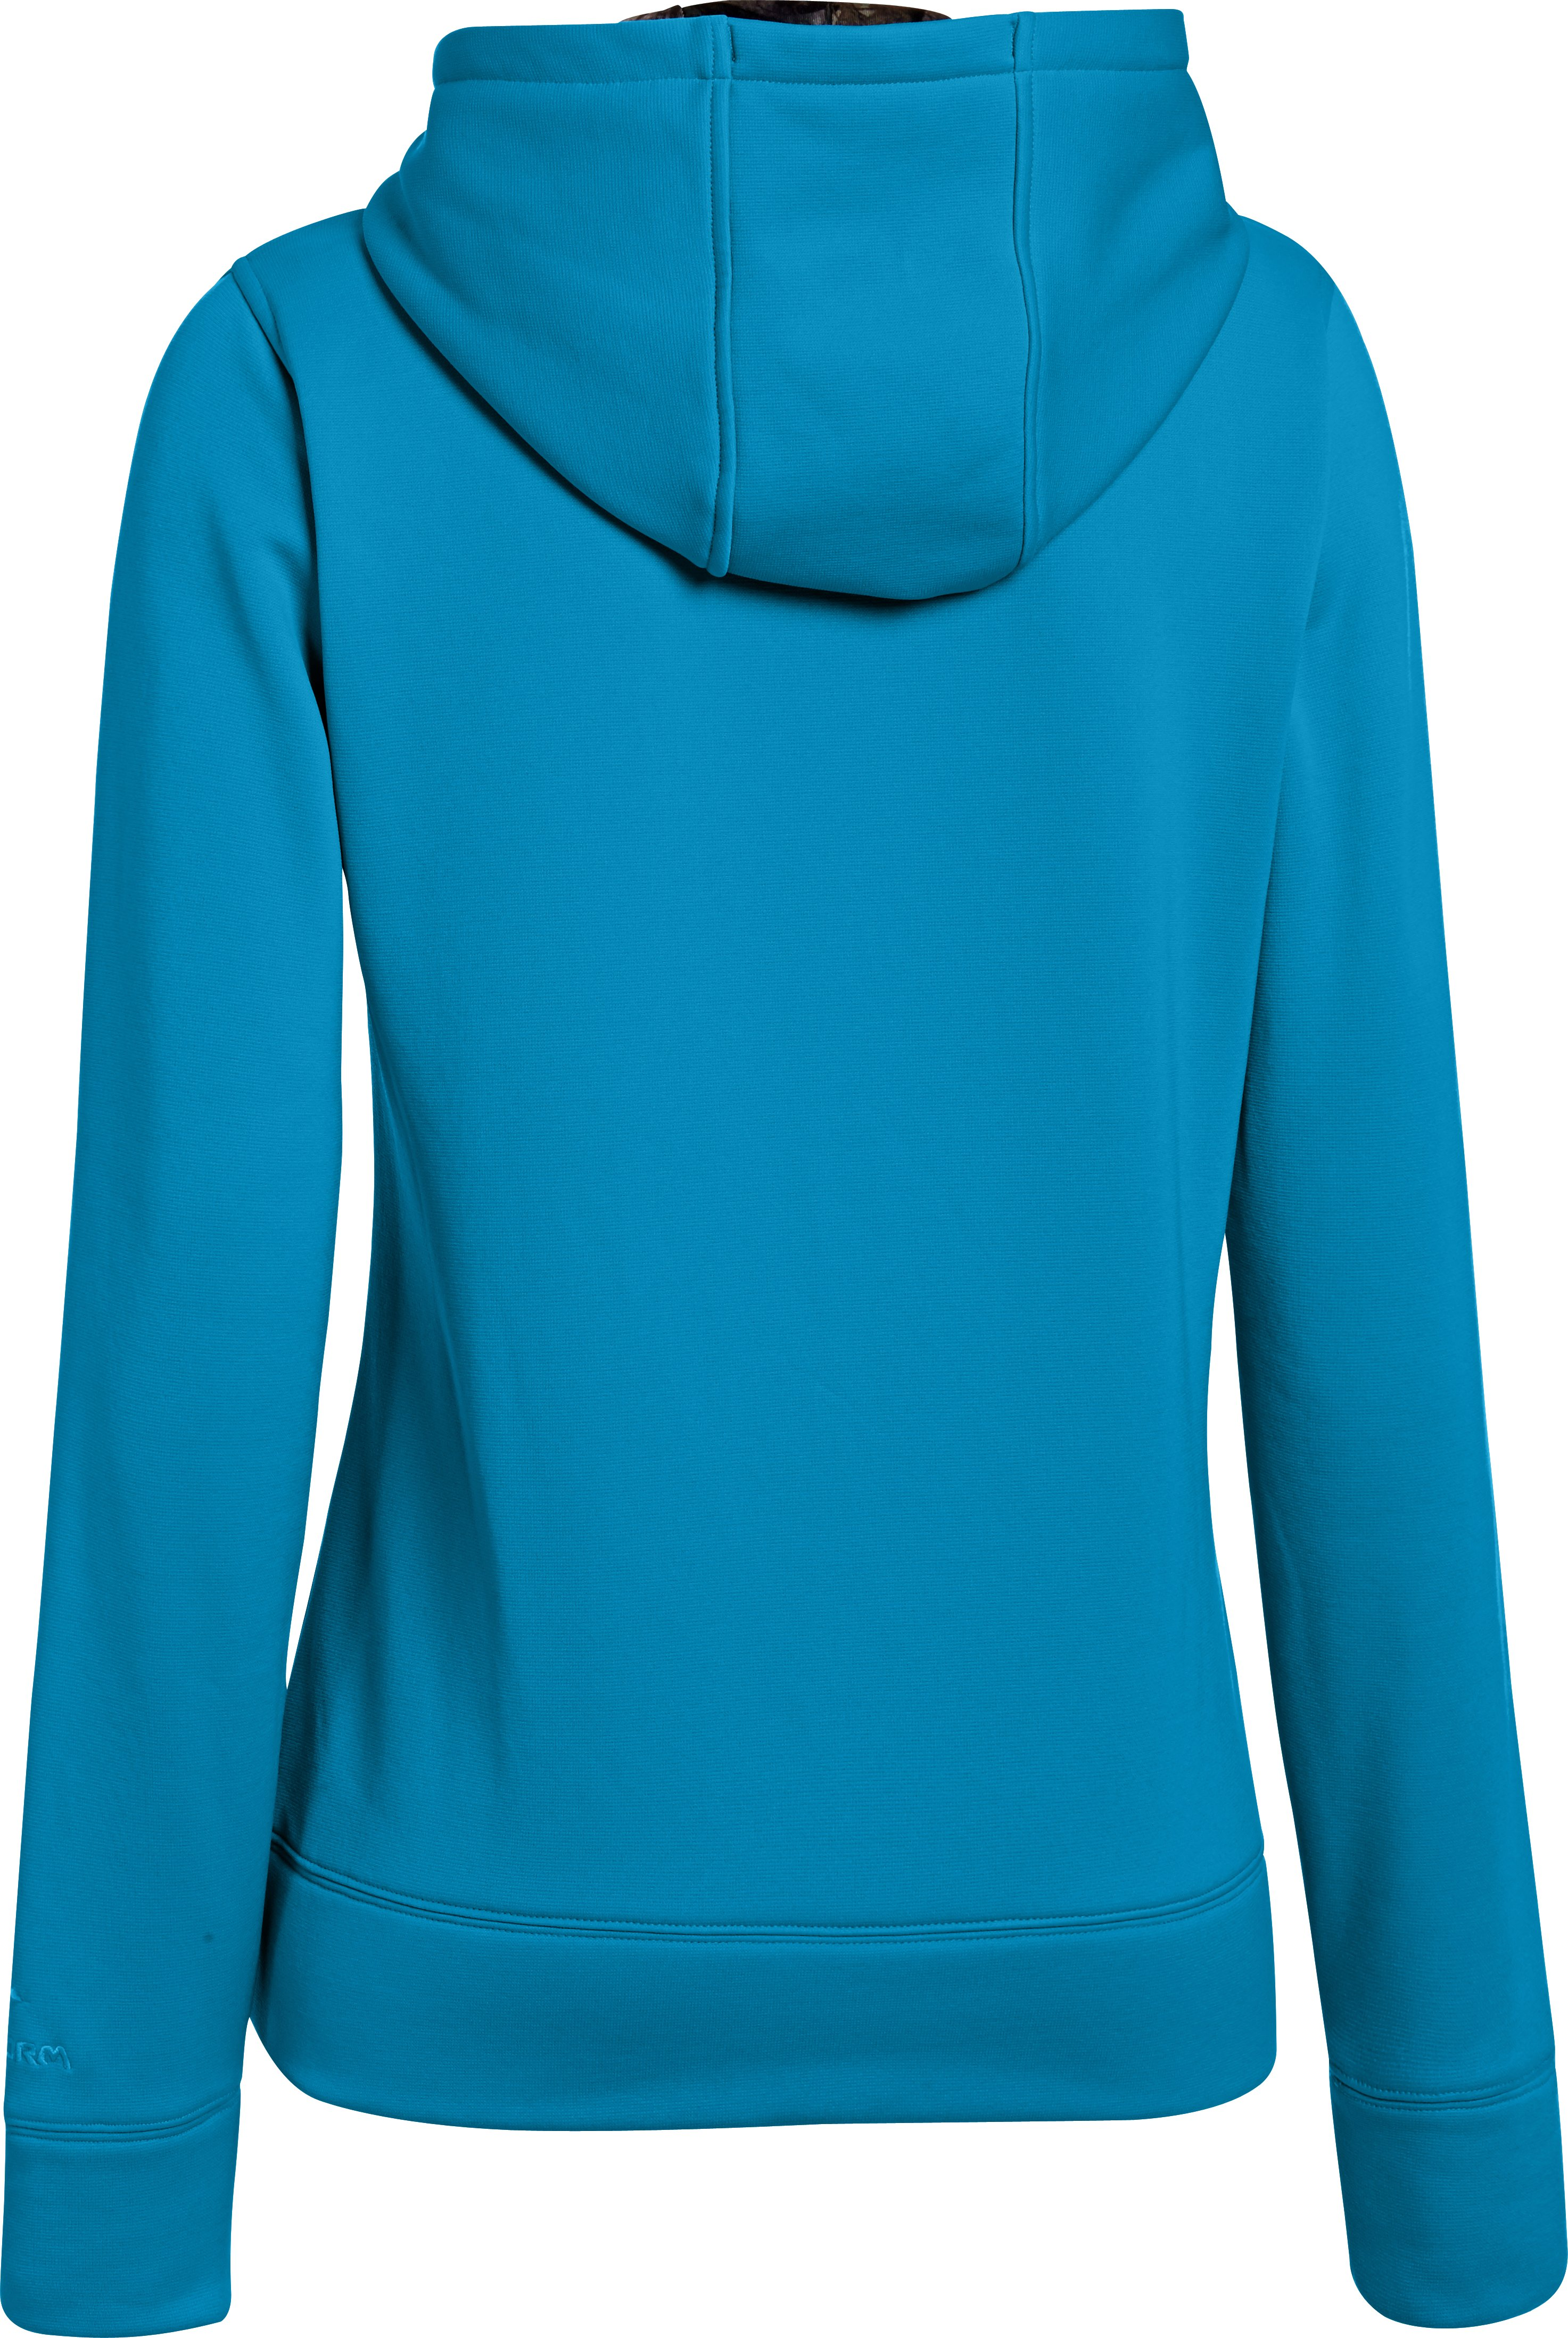 Women's UA Storm Caliber Hoodie, PIRATE BLUE